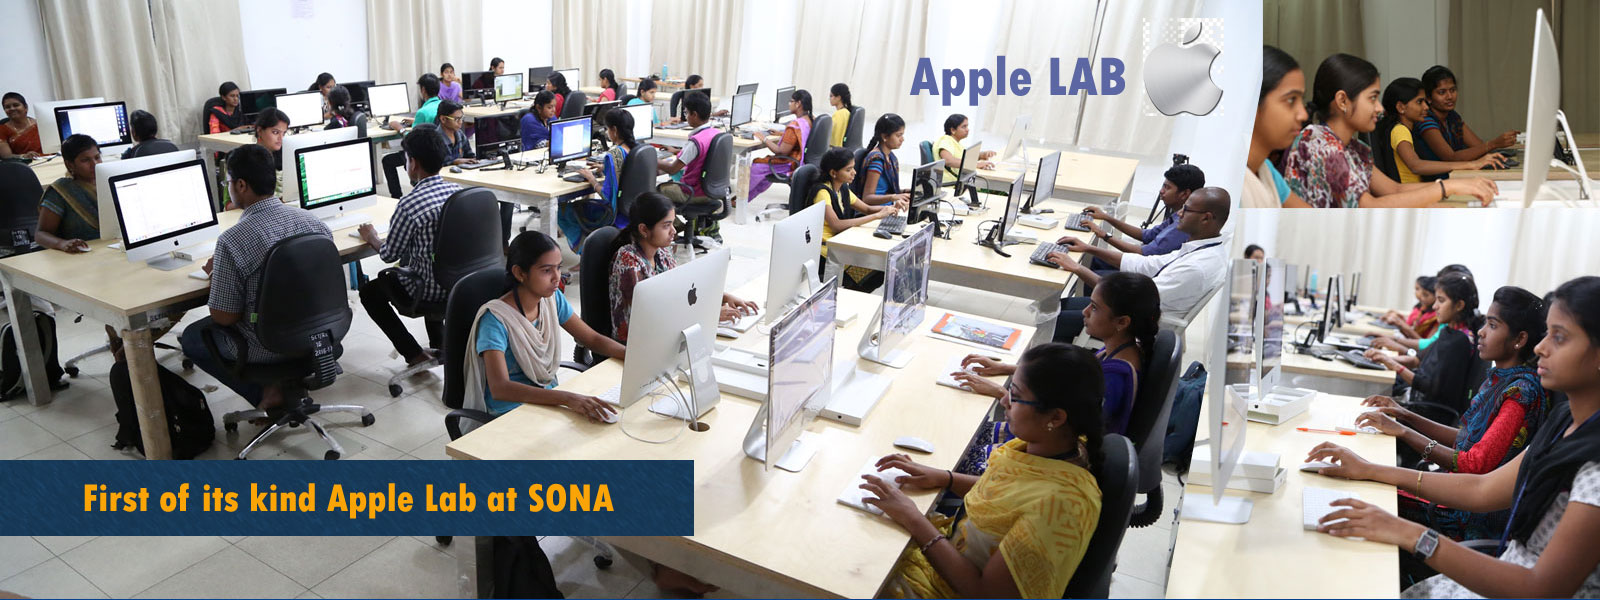 apple lab